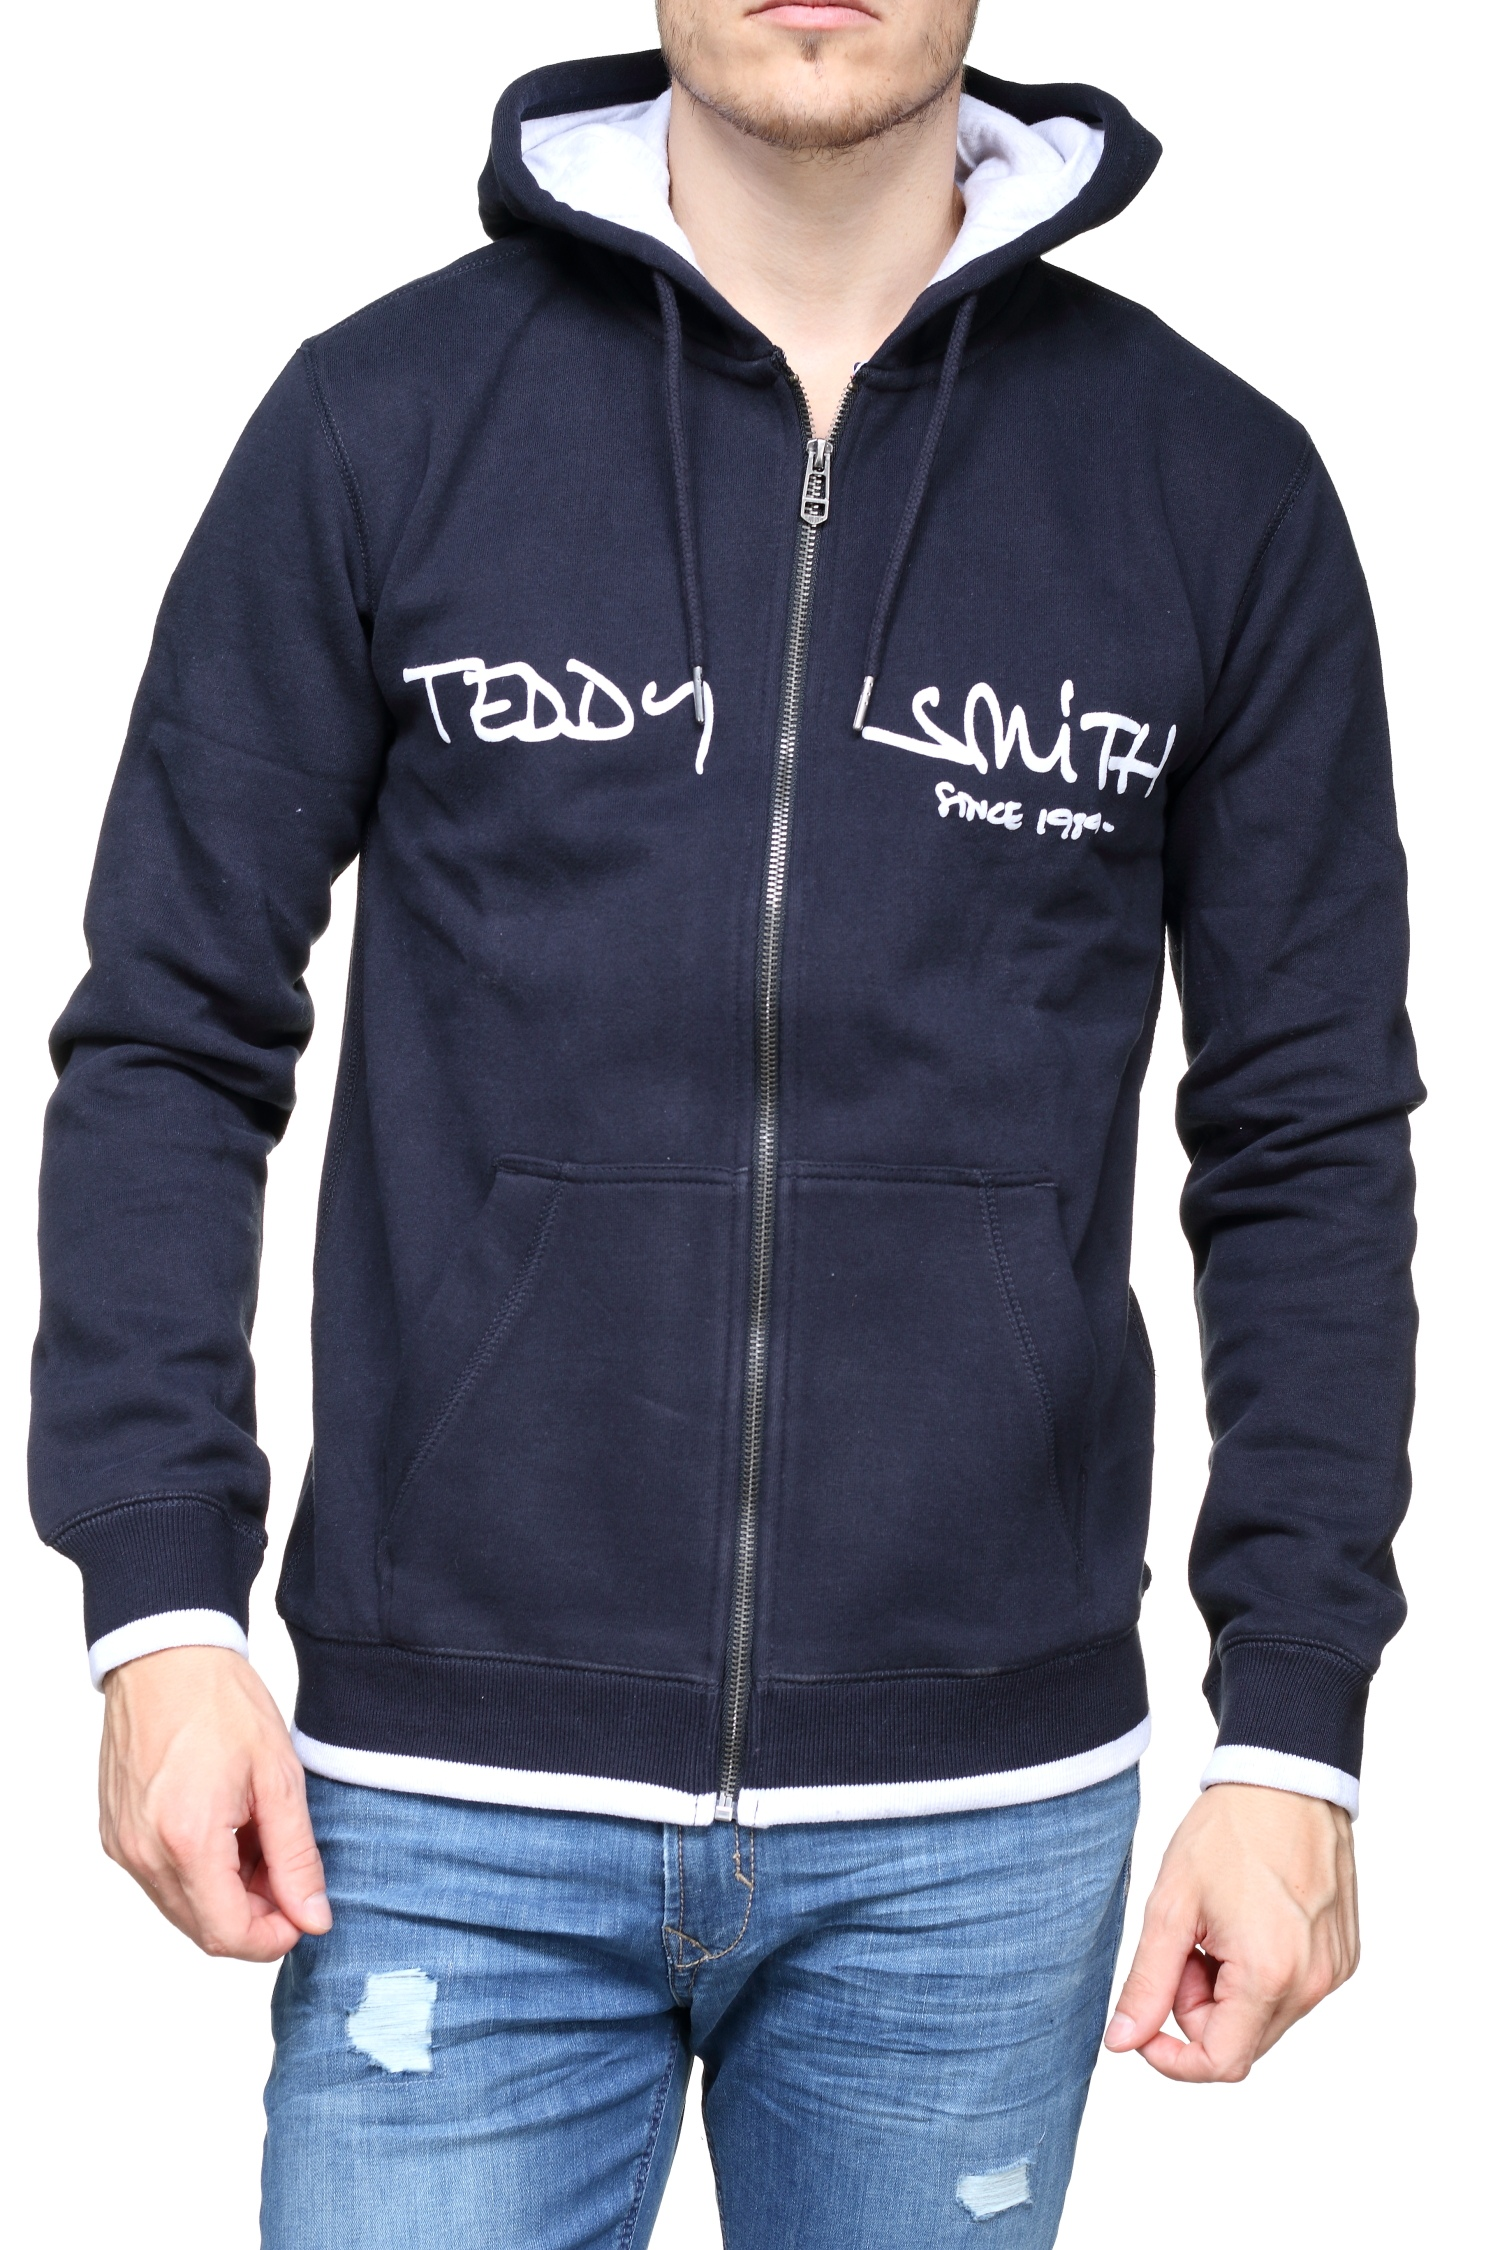 http://www.leadermode.com/152122/teddy-smith-giclass-hoody-10913638d-351-dark-navy.jpg